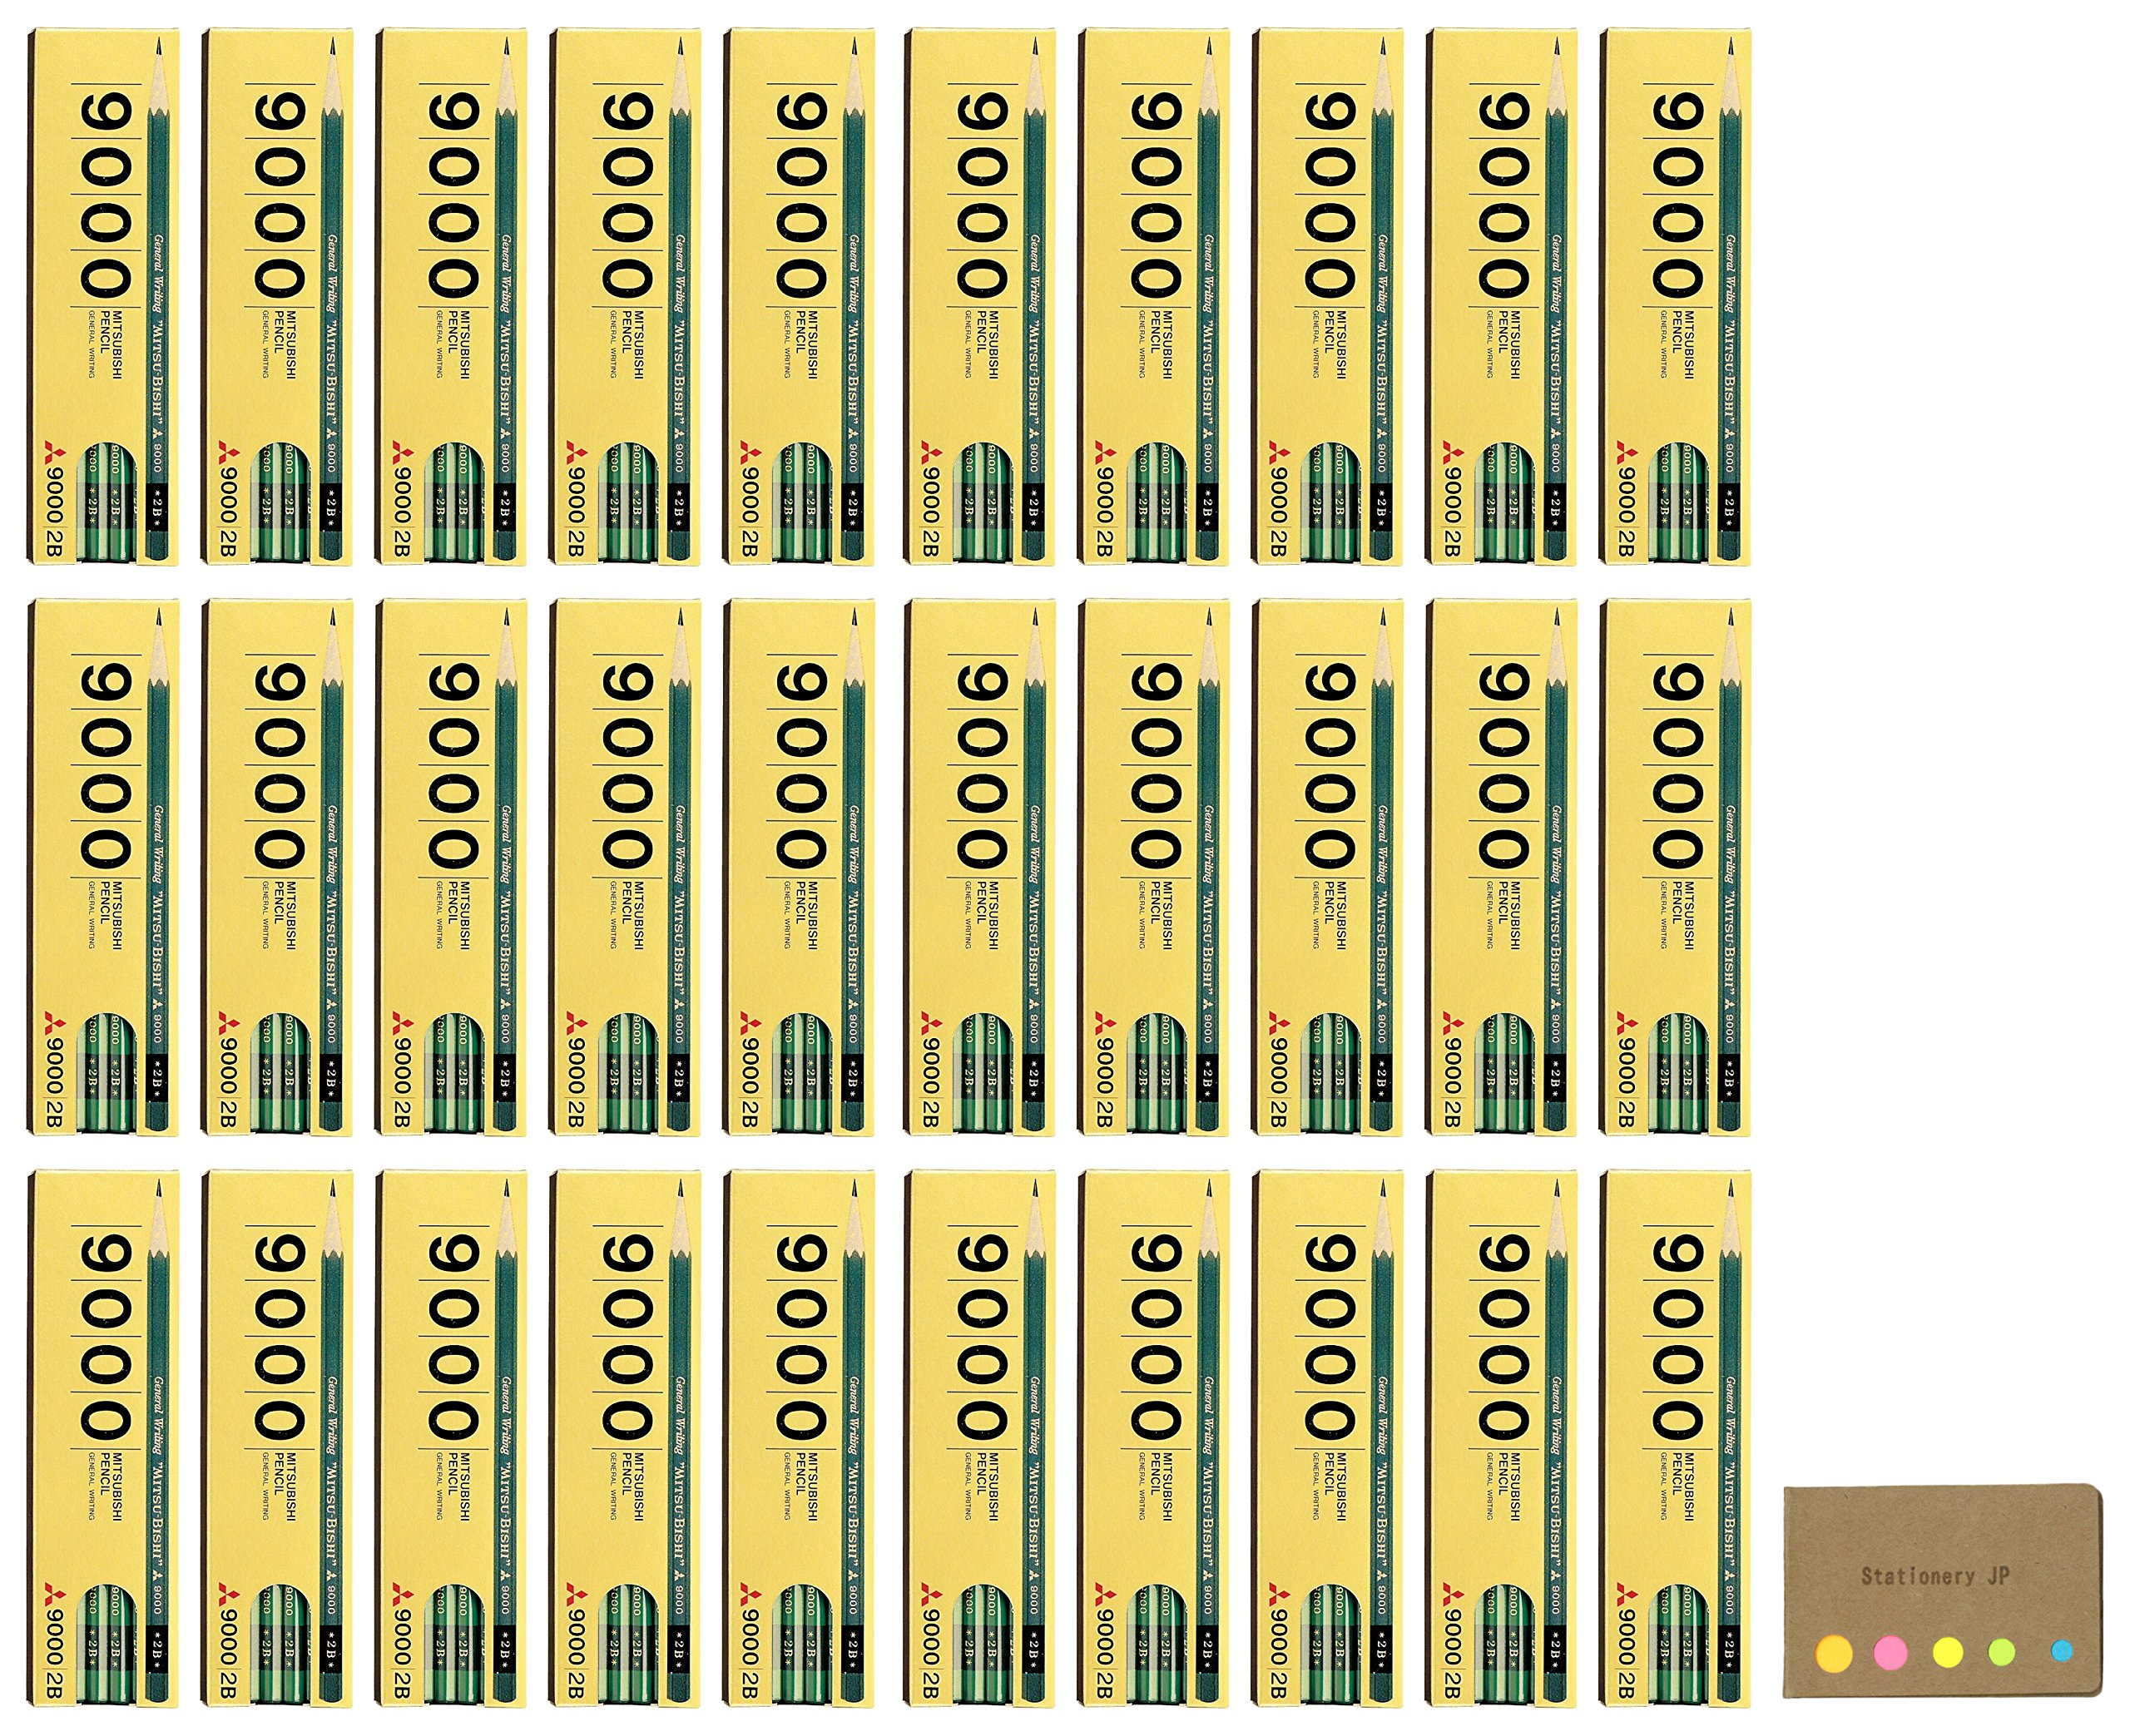 Uni Mitsubishi 9000 Pencil, 2B, 30-pack/total 360 pcs, Sticky Notes Value Set by Stationery JP (Image #1)